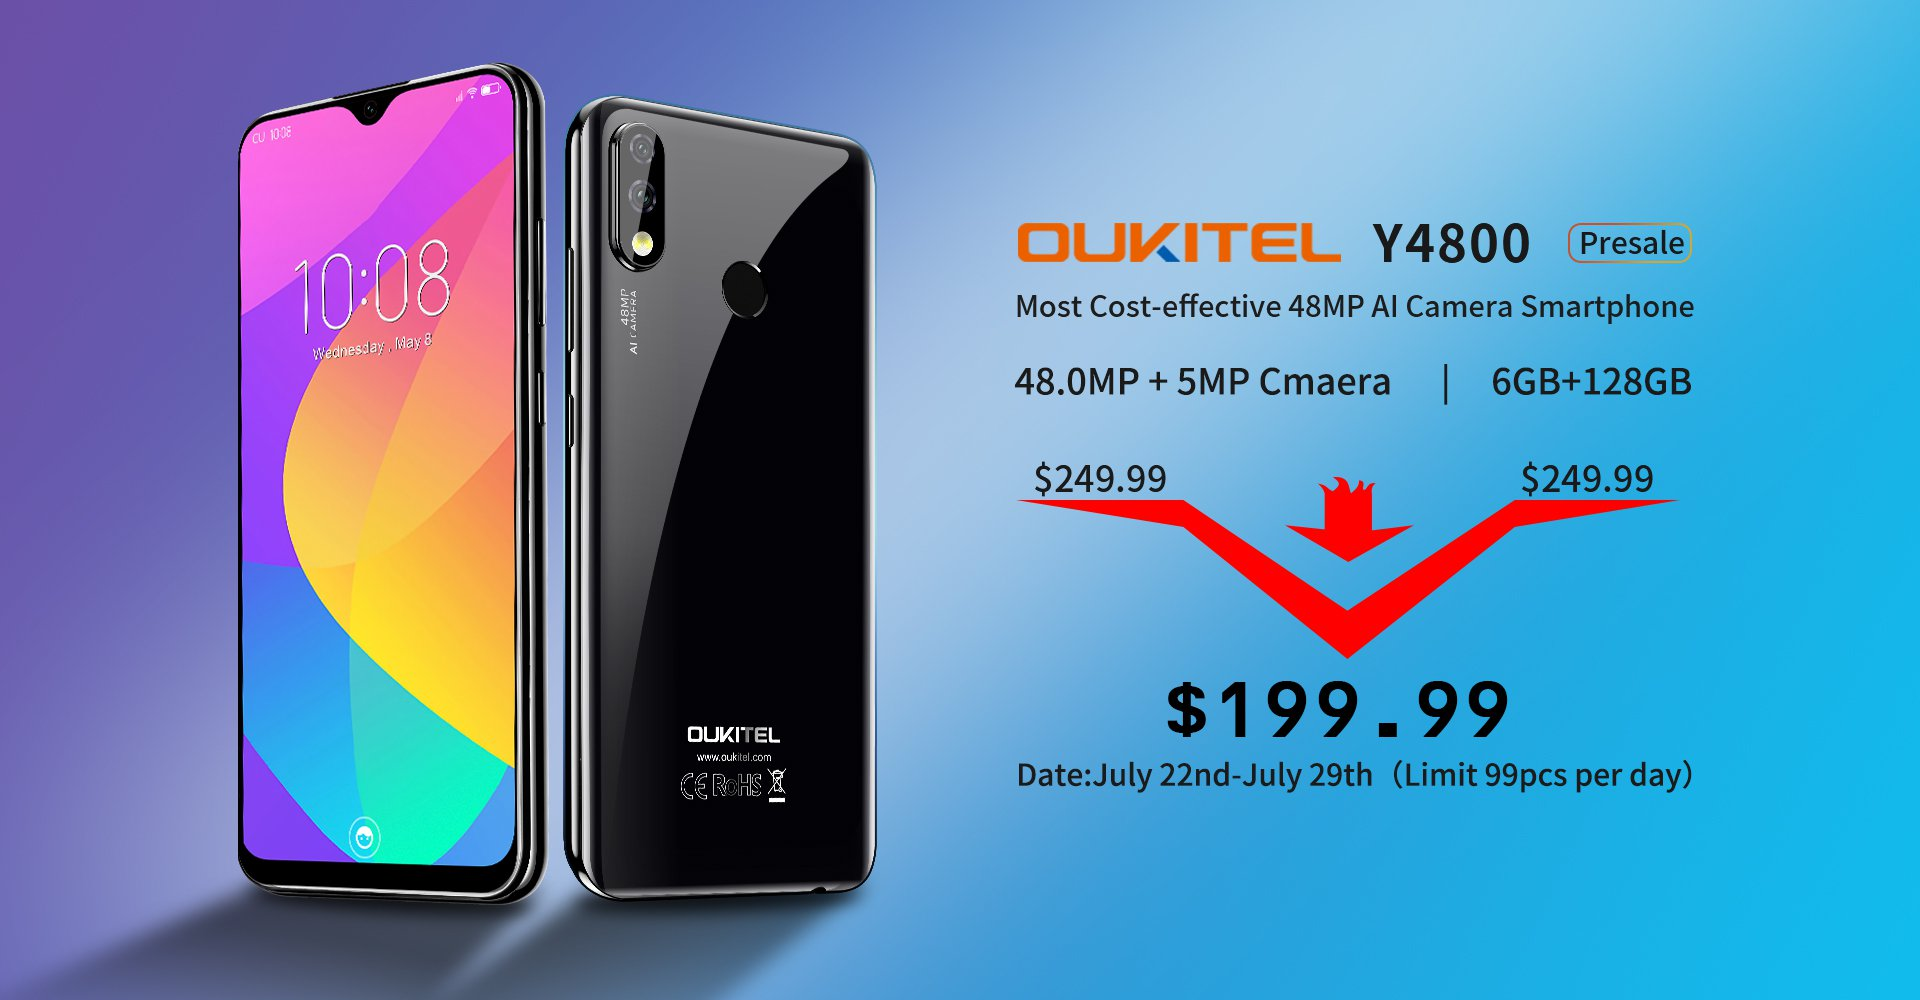 OUKITEL-Y4800-sale-at-199.99